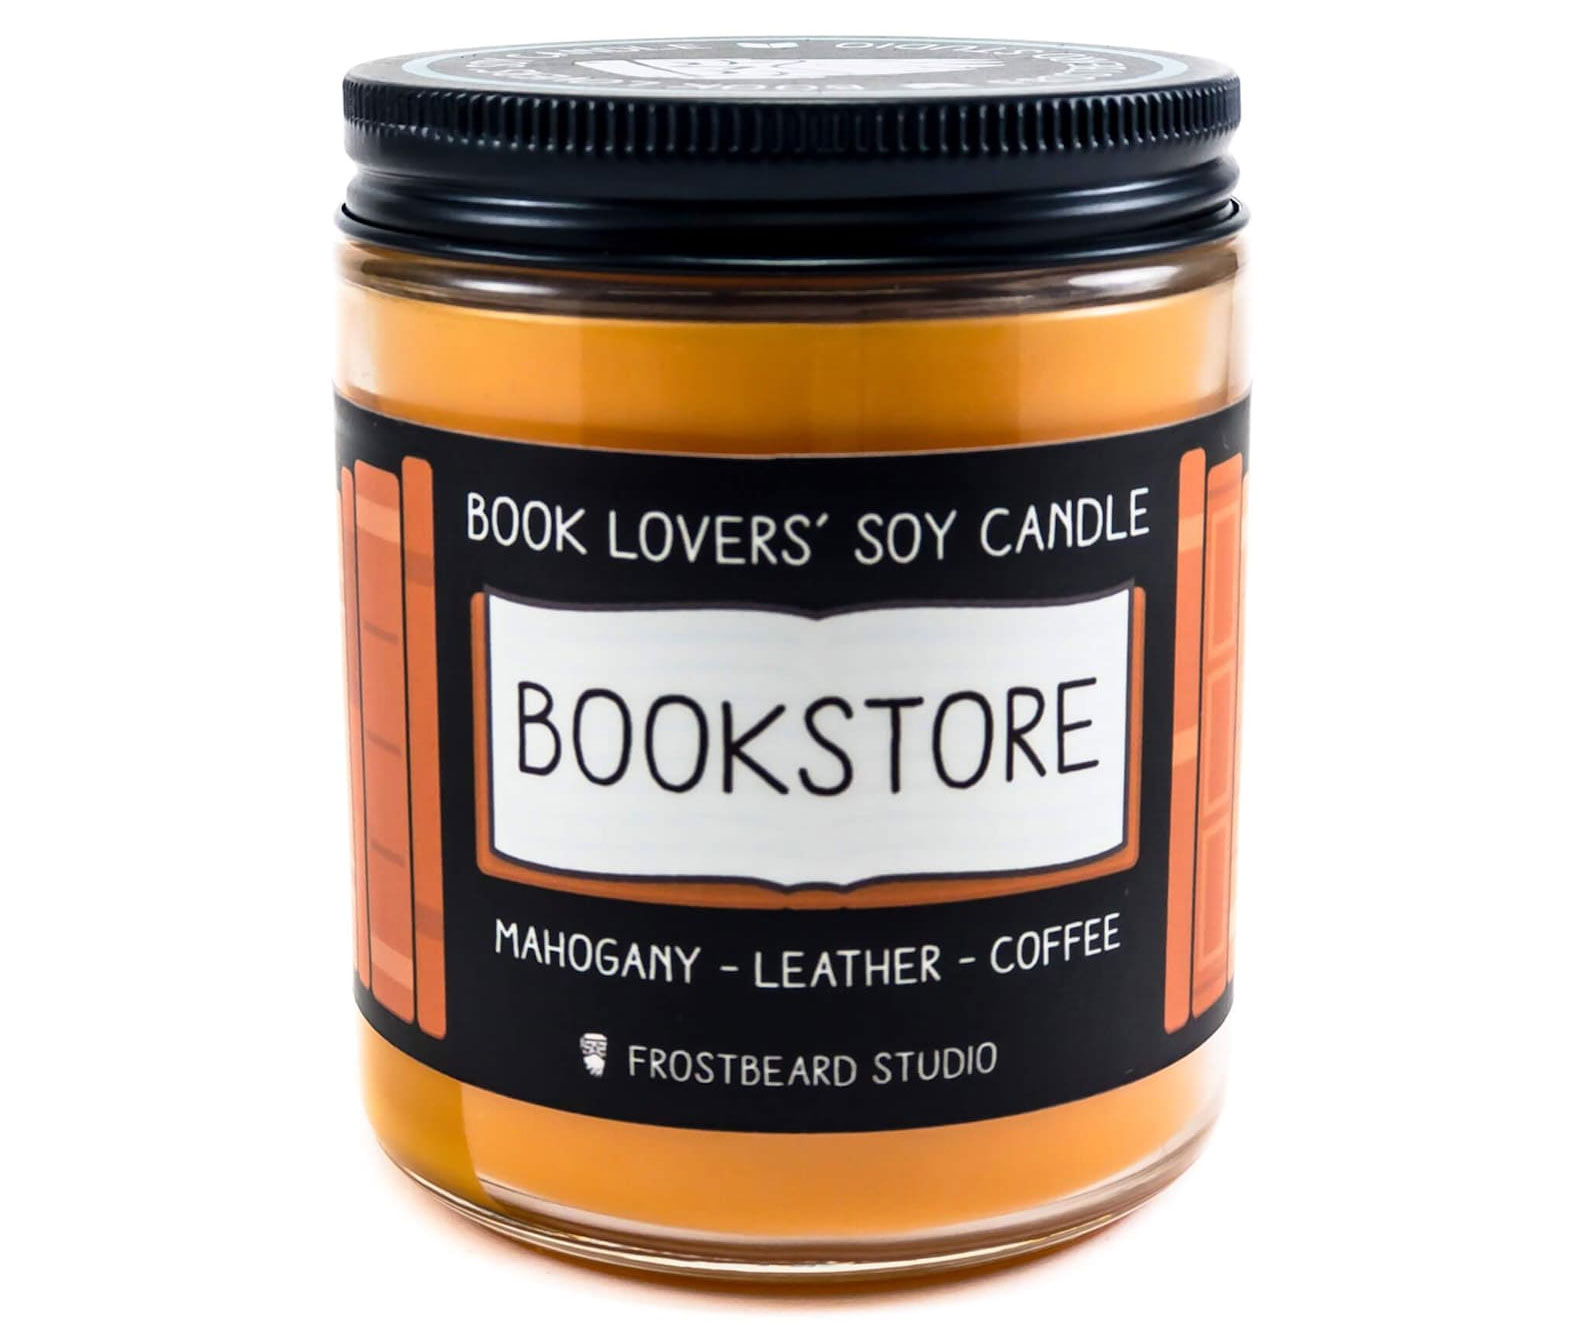 Bookstore Scented Candle